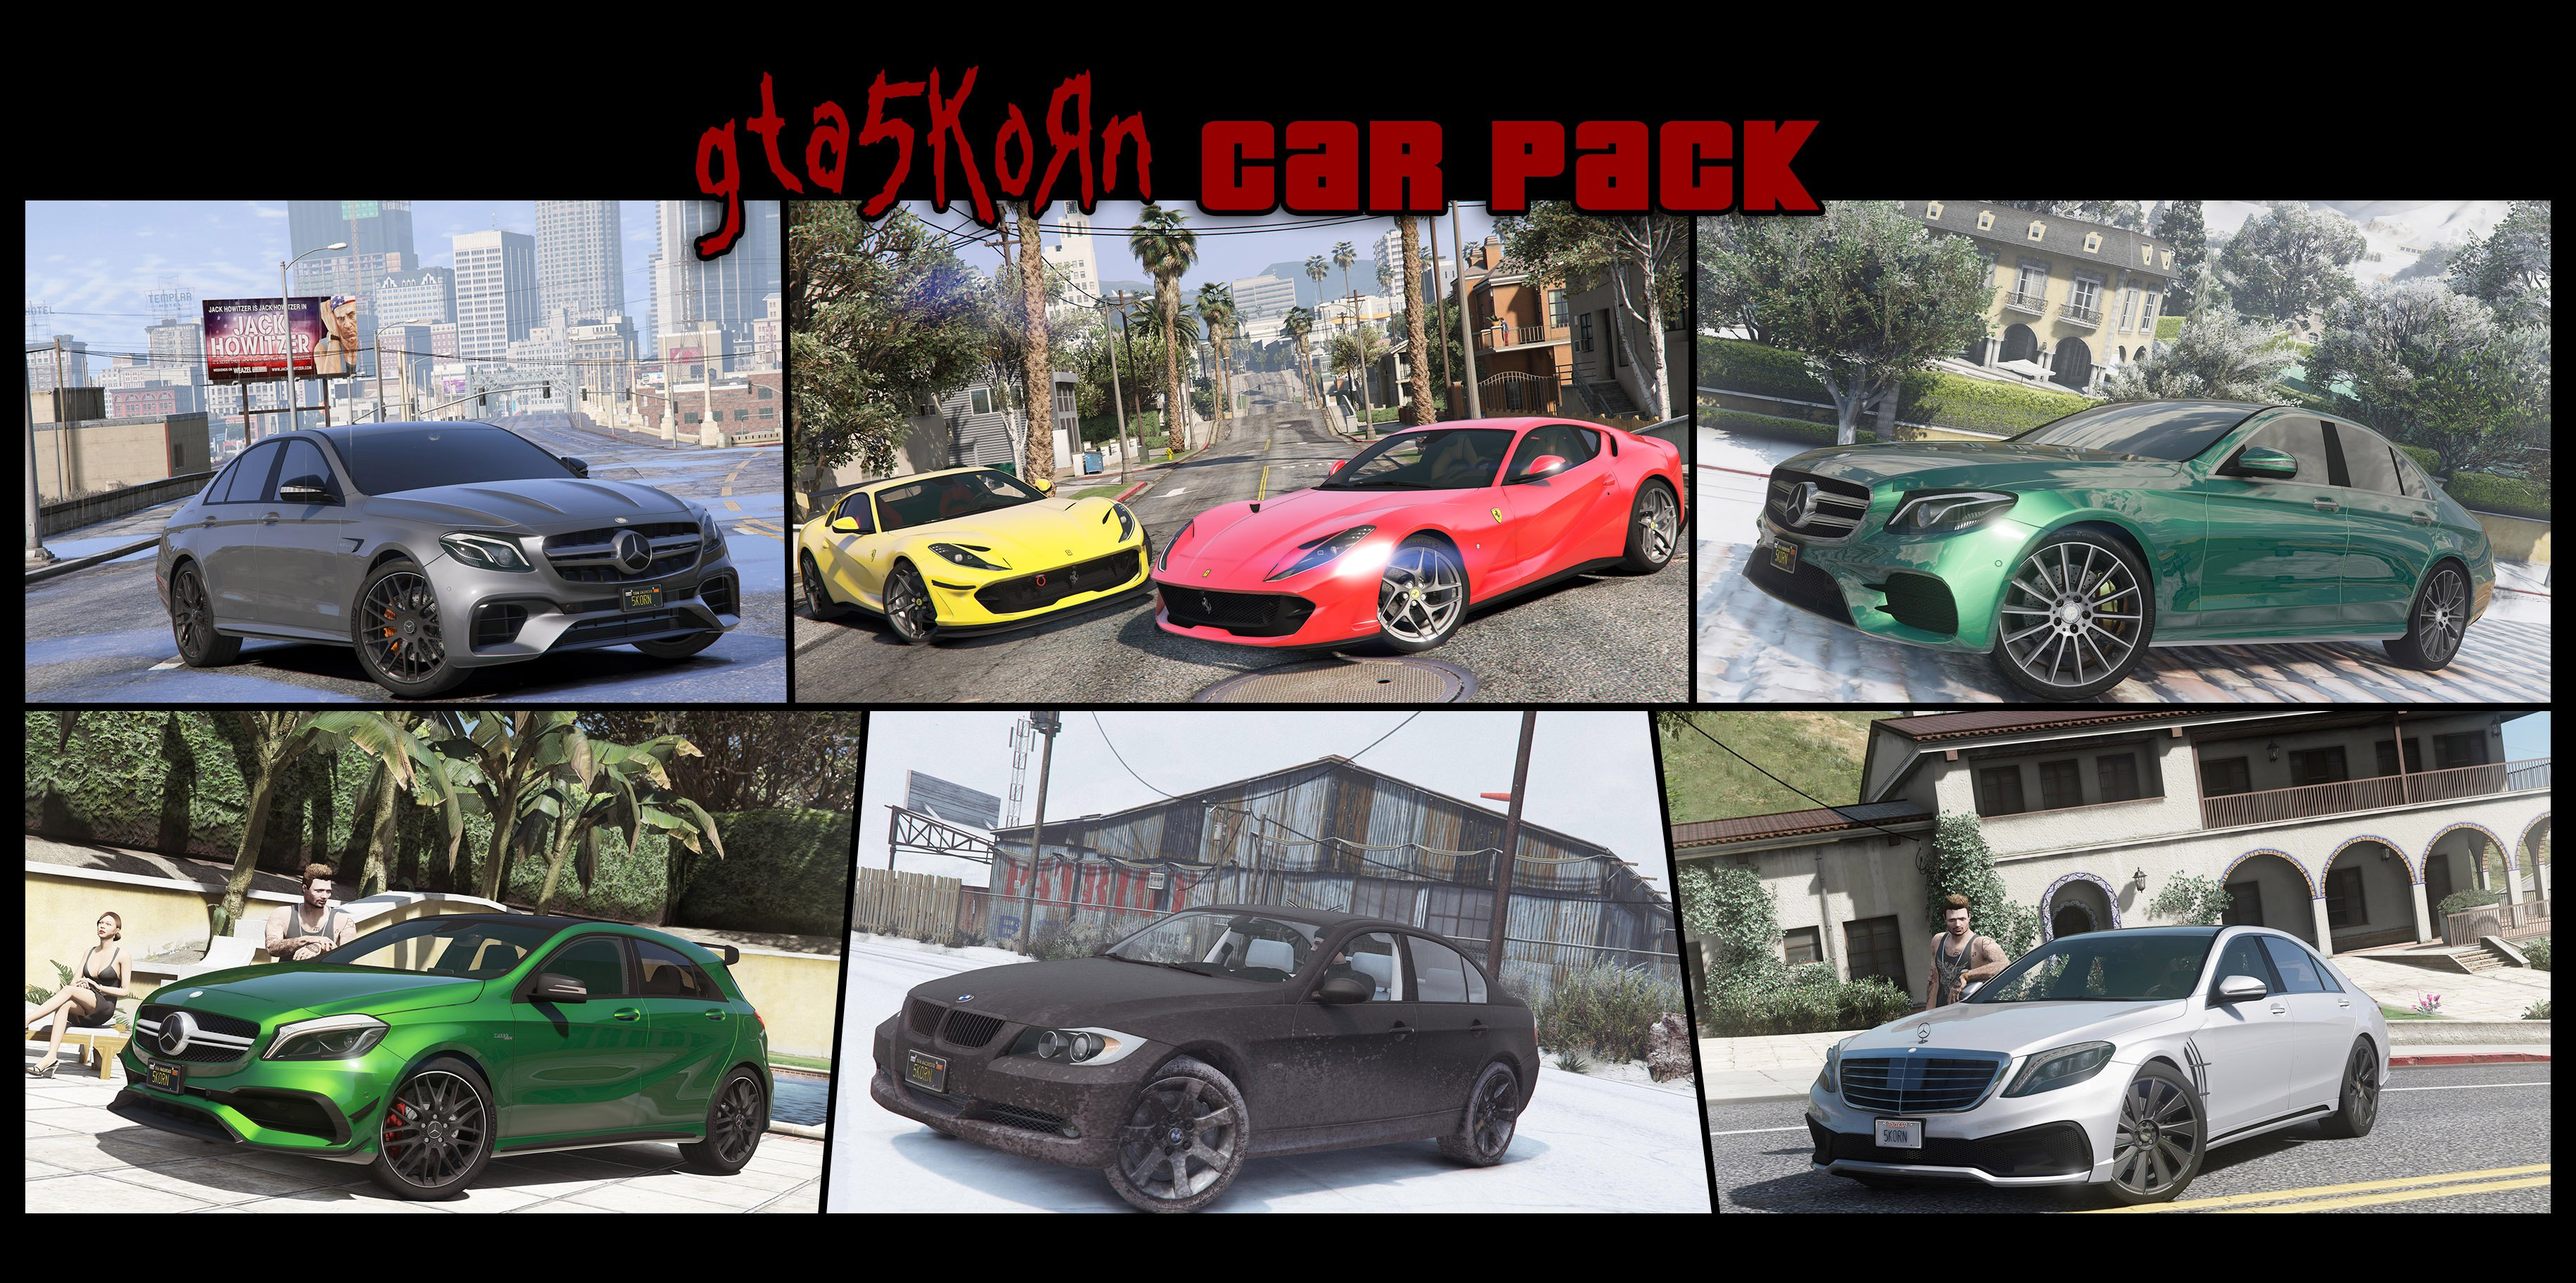 Gta5KoRn Car Pack (48 cars) - GTA5-Mods com